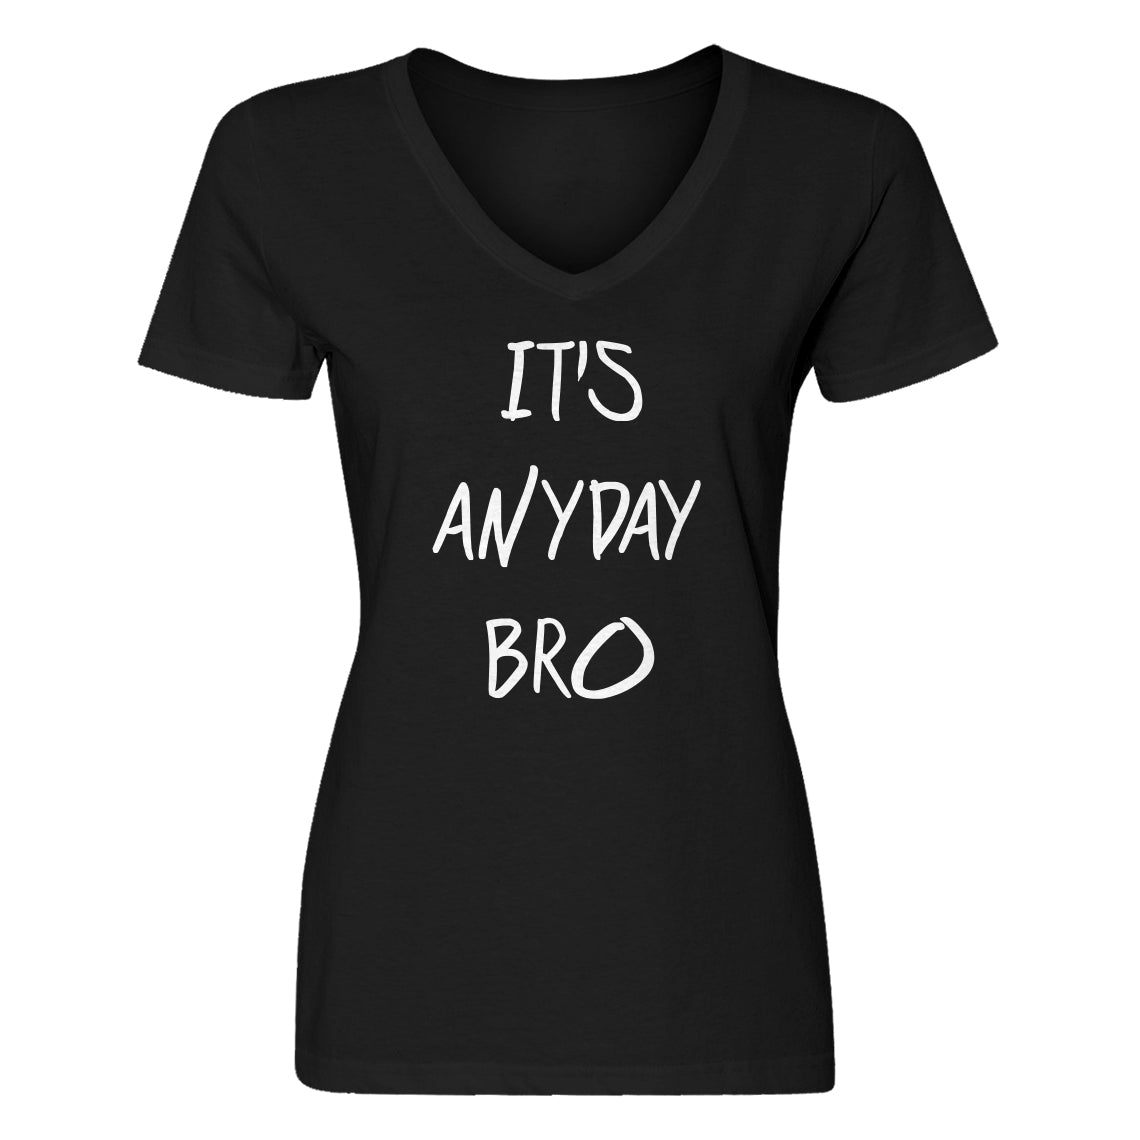 Womens Its Anyday Bro Vneck T-shirt